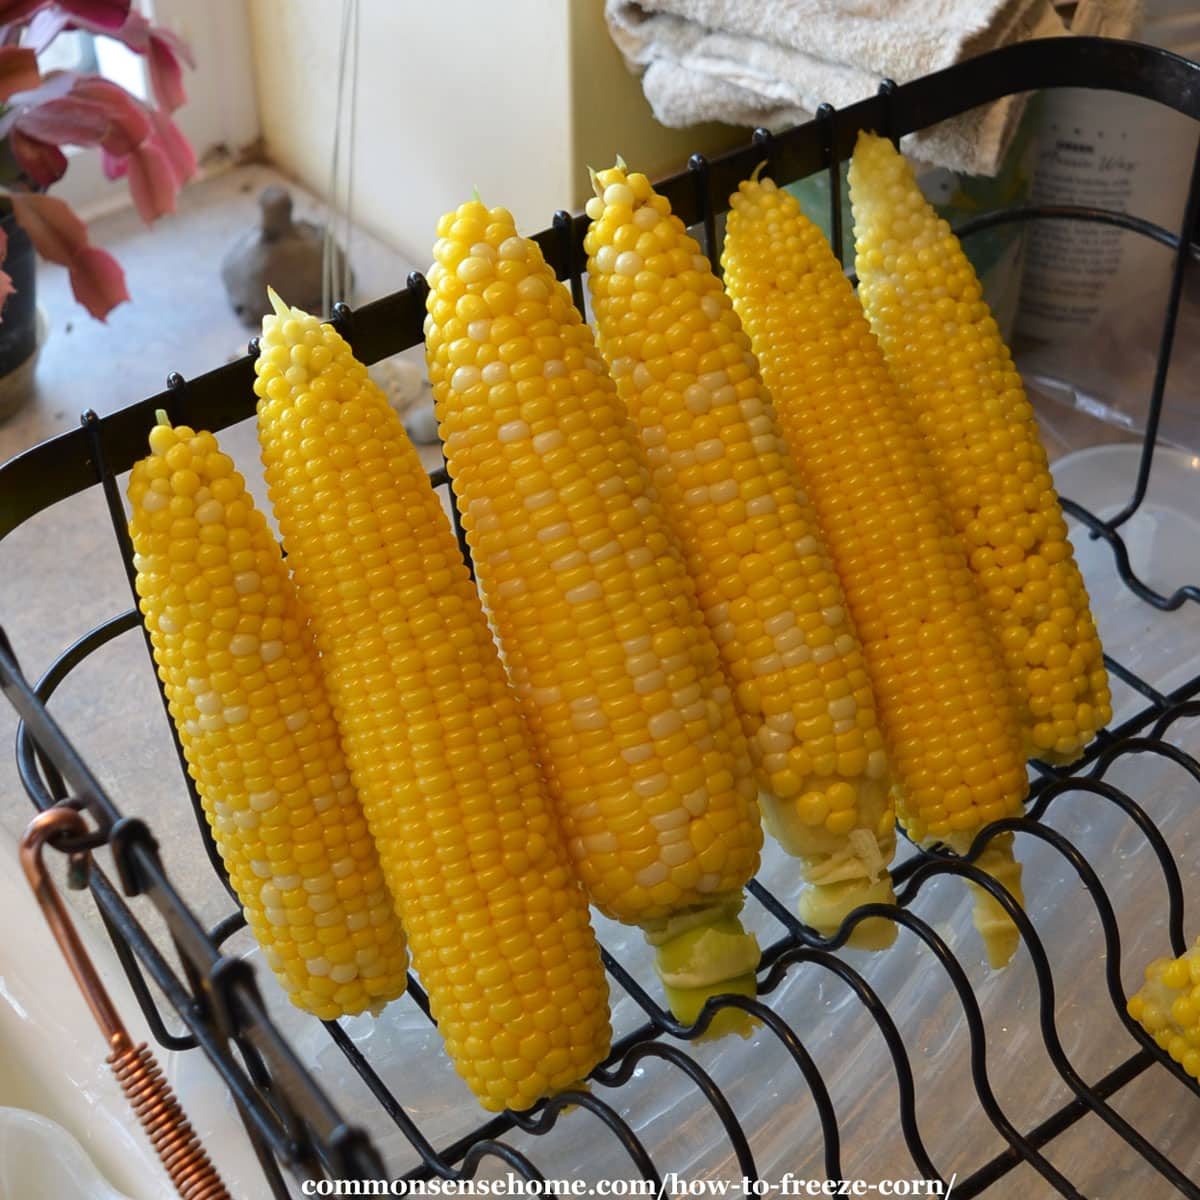 draining the sweet corn after blanching